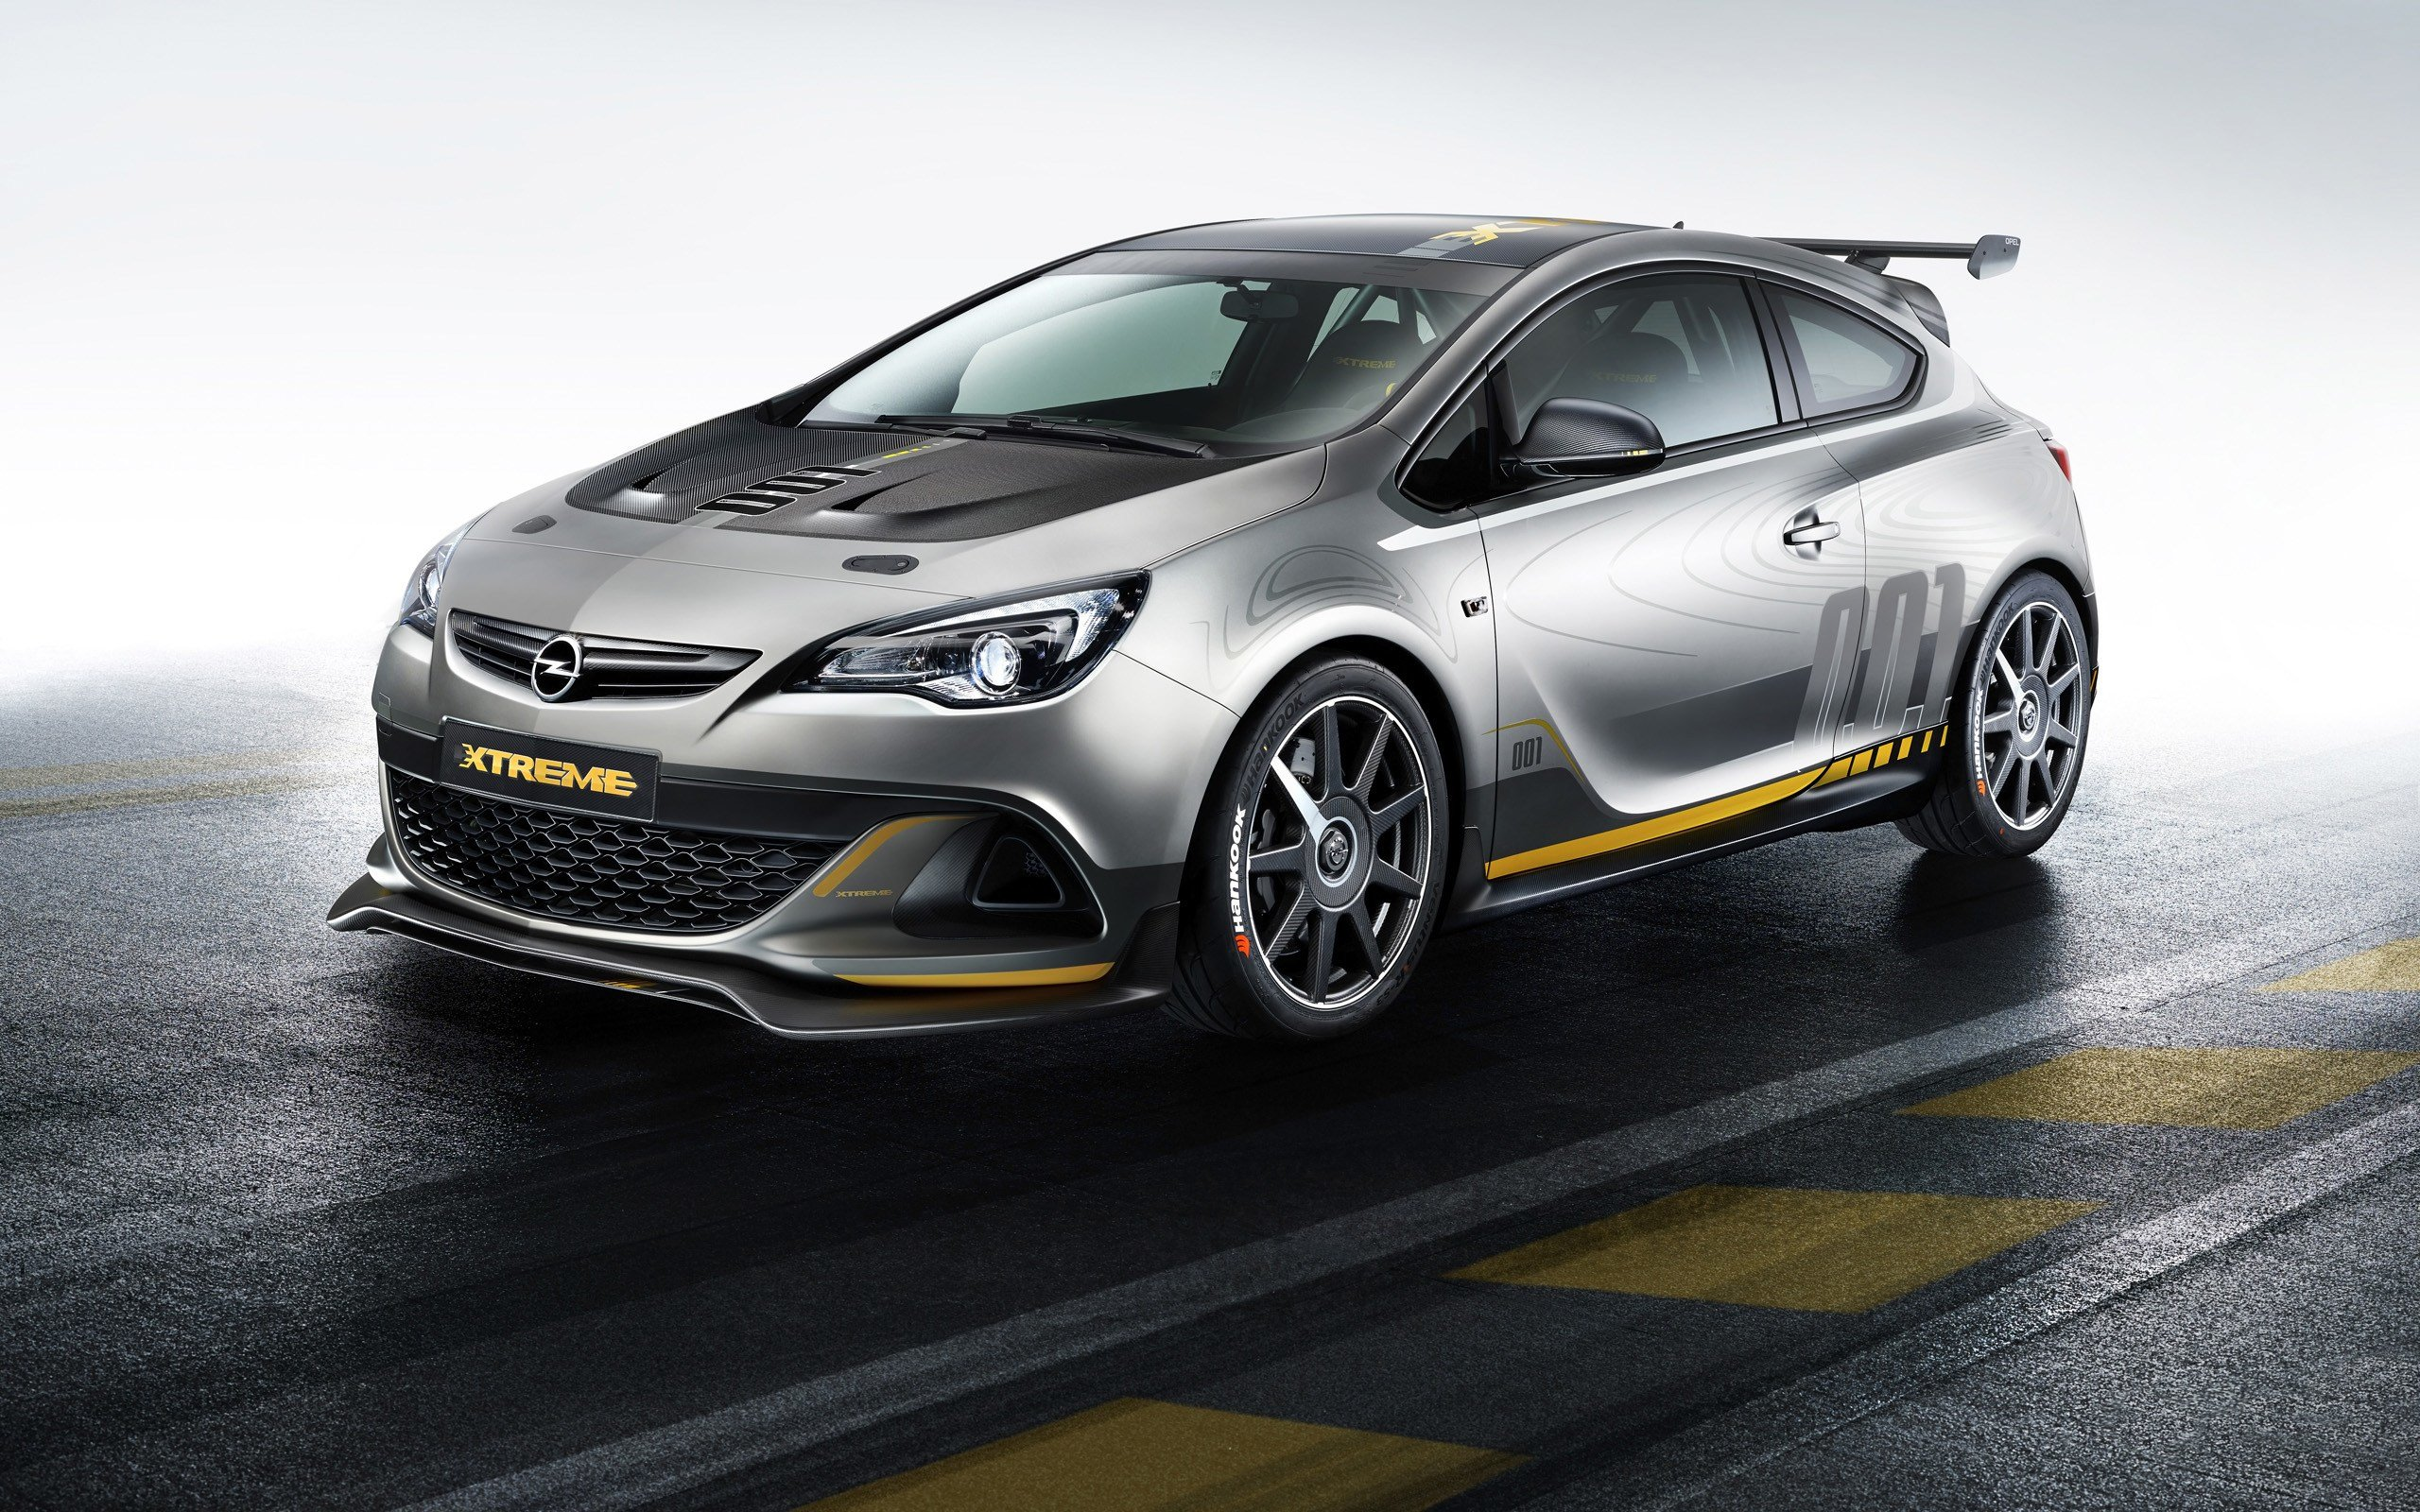 Latest 2014 Opel Astra Opc Extreme Wallpaper Hd Car Wallpapers Id 4220 Free Download